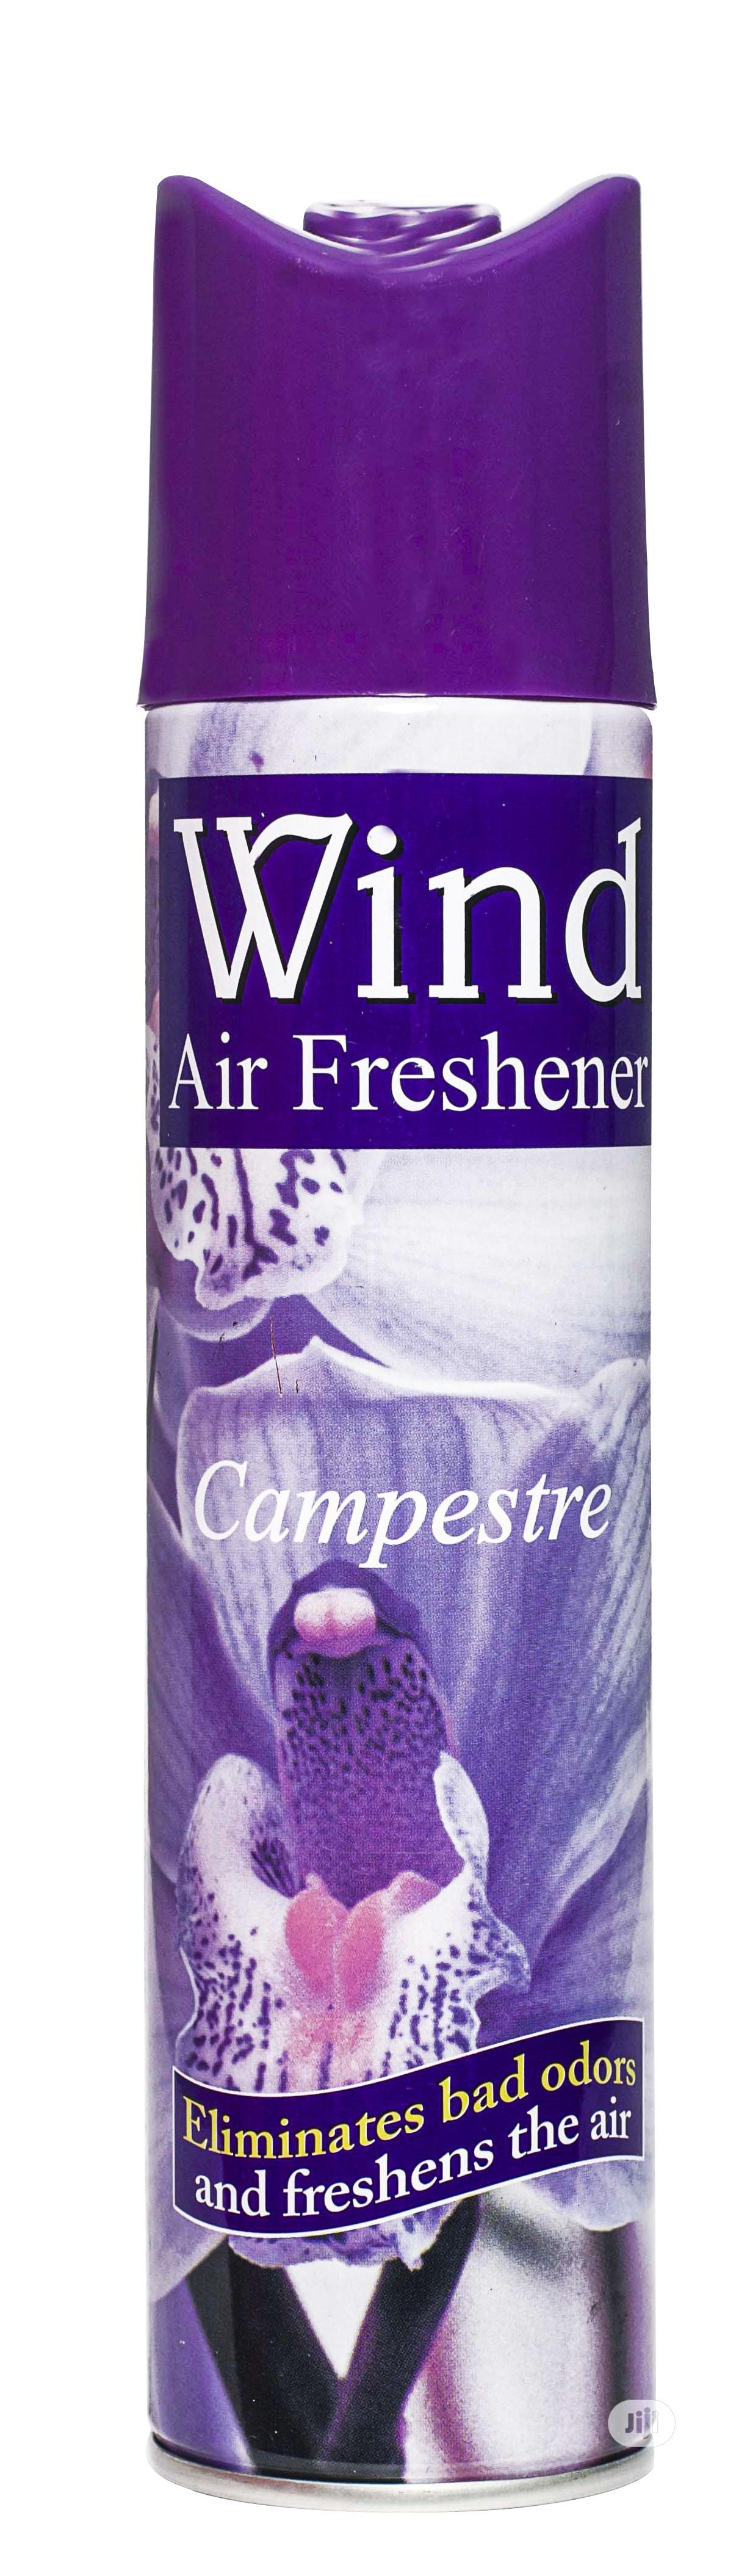 Wind Spray Air Freshener 300ml-3pieces | Home Accessories for sale in Ilupeju, Lagos State, Nigeria